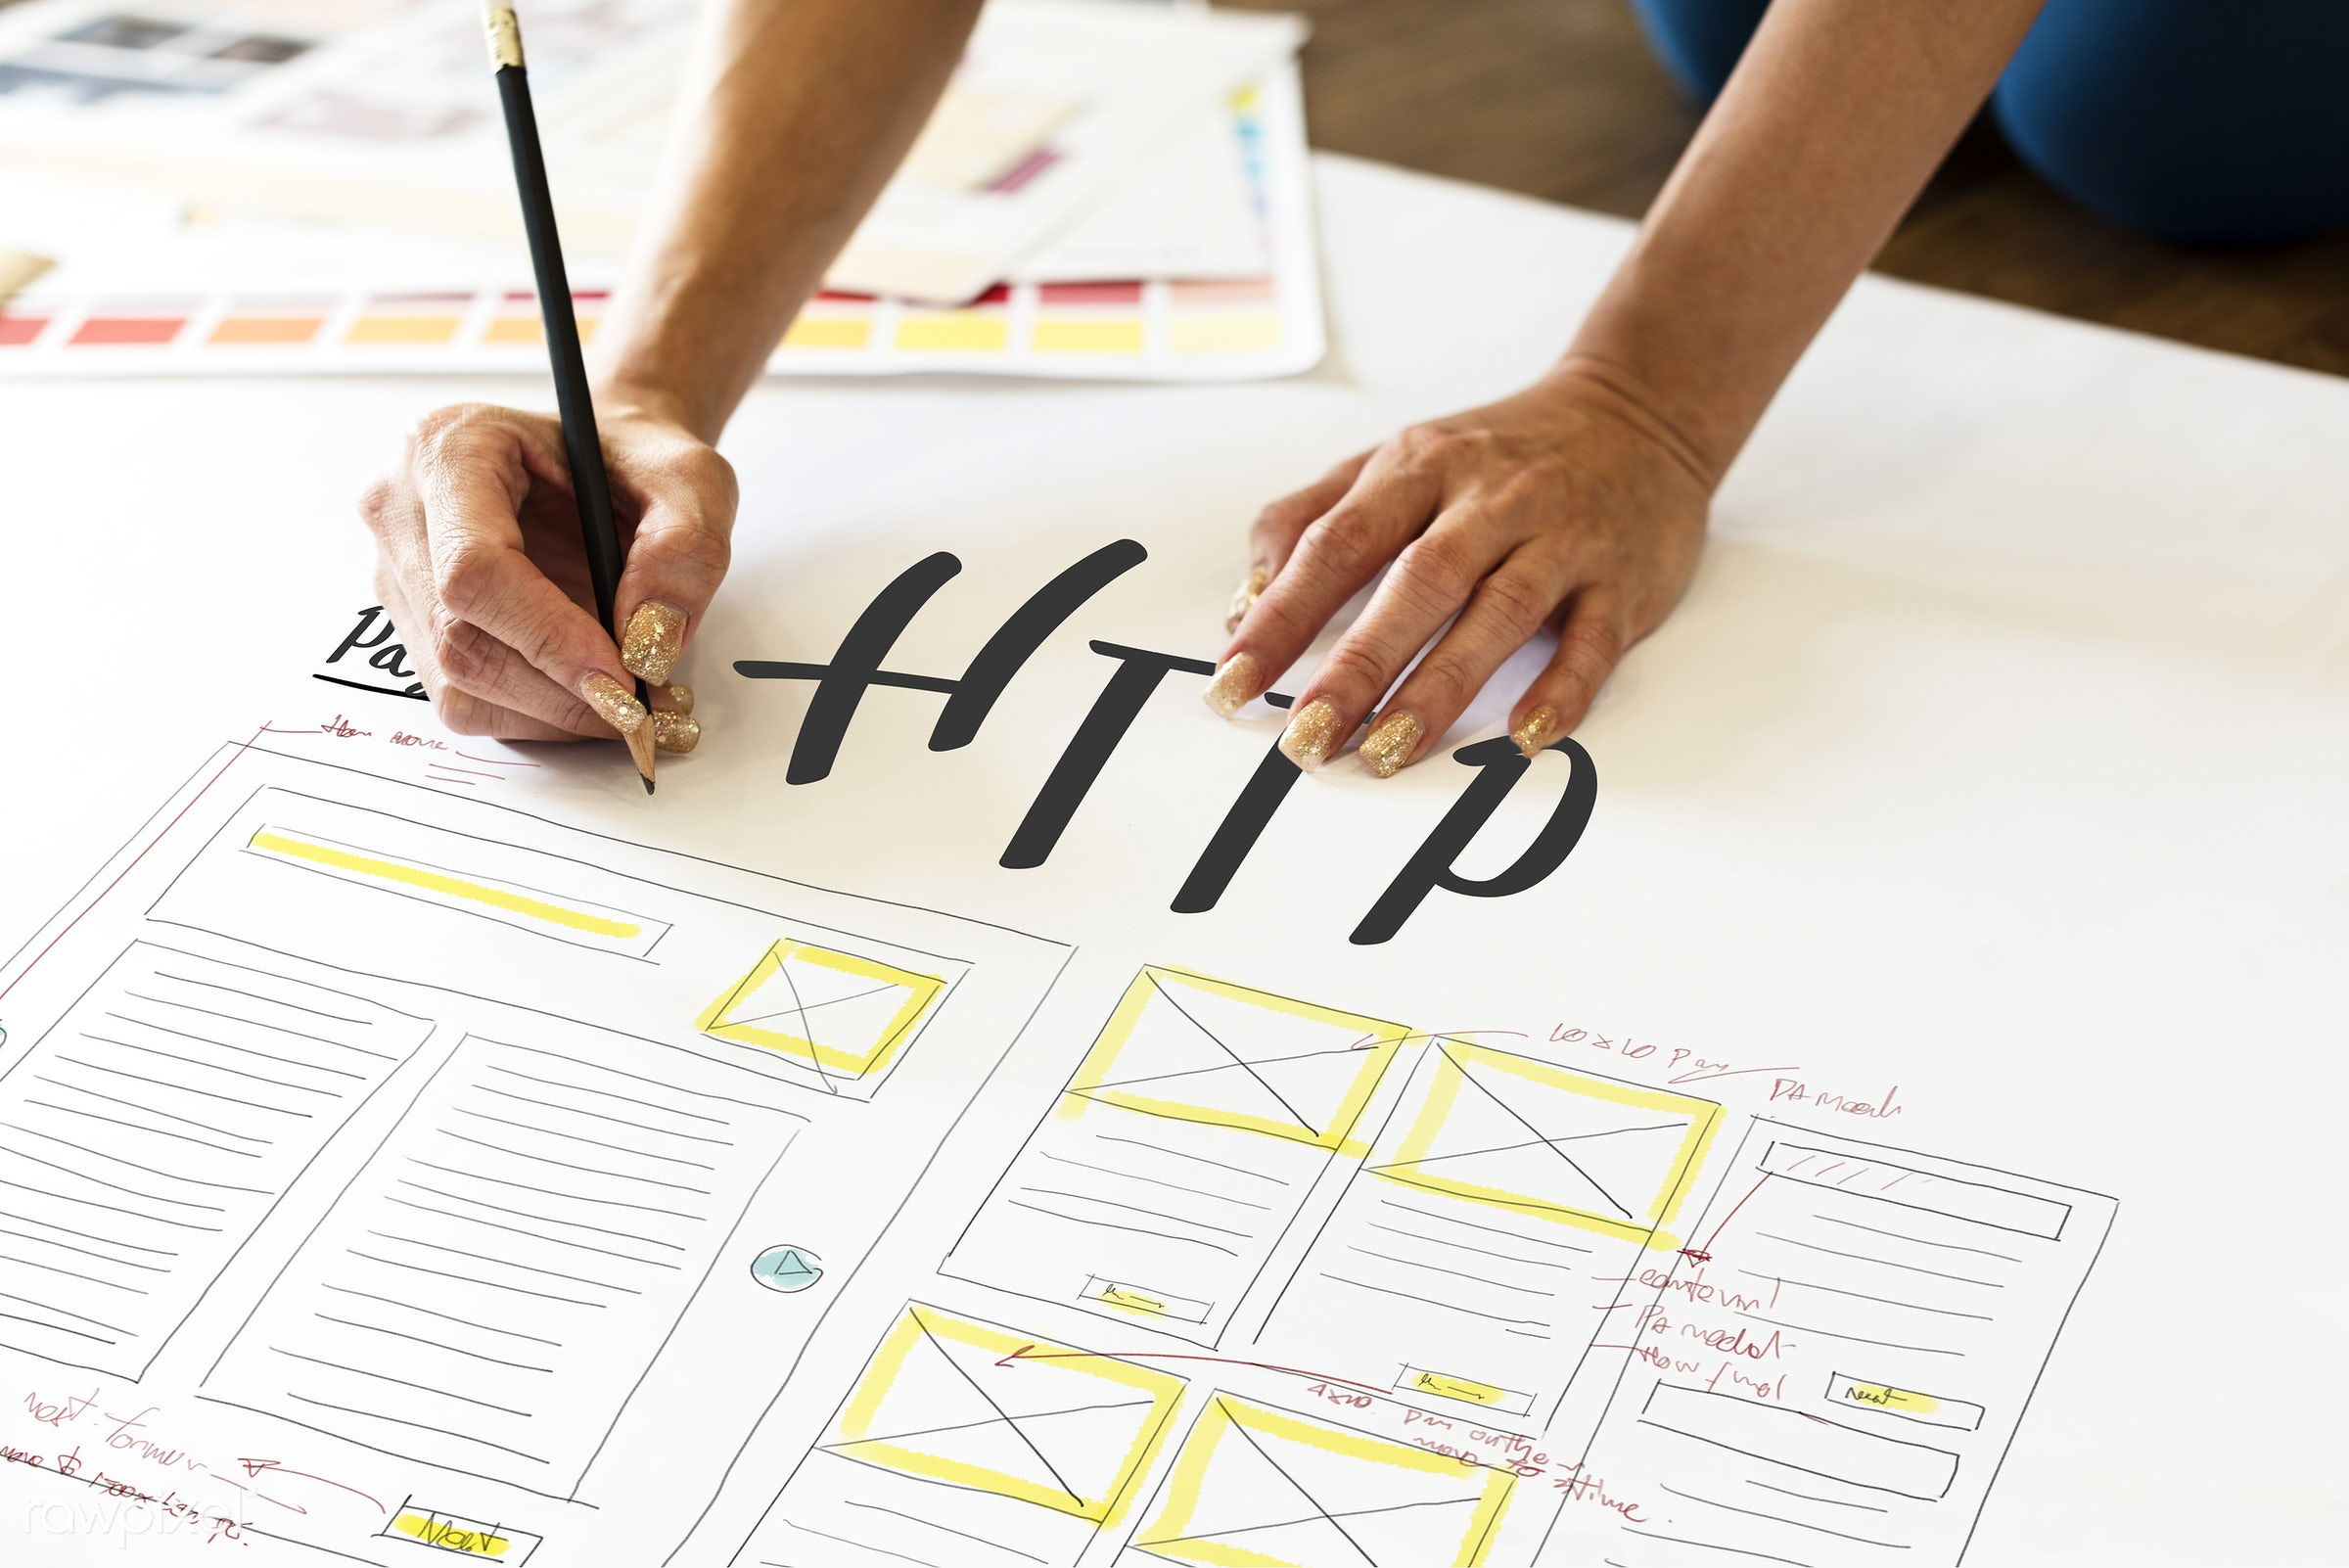 analysis, art, coding, creation, creative, creativity, design, drawing, graphic, hands, homepage, html, http, ideas,...